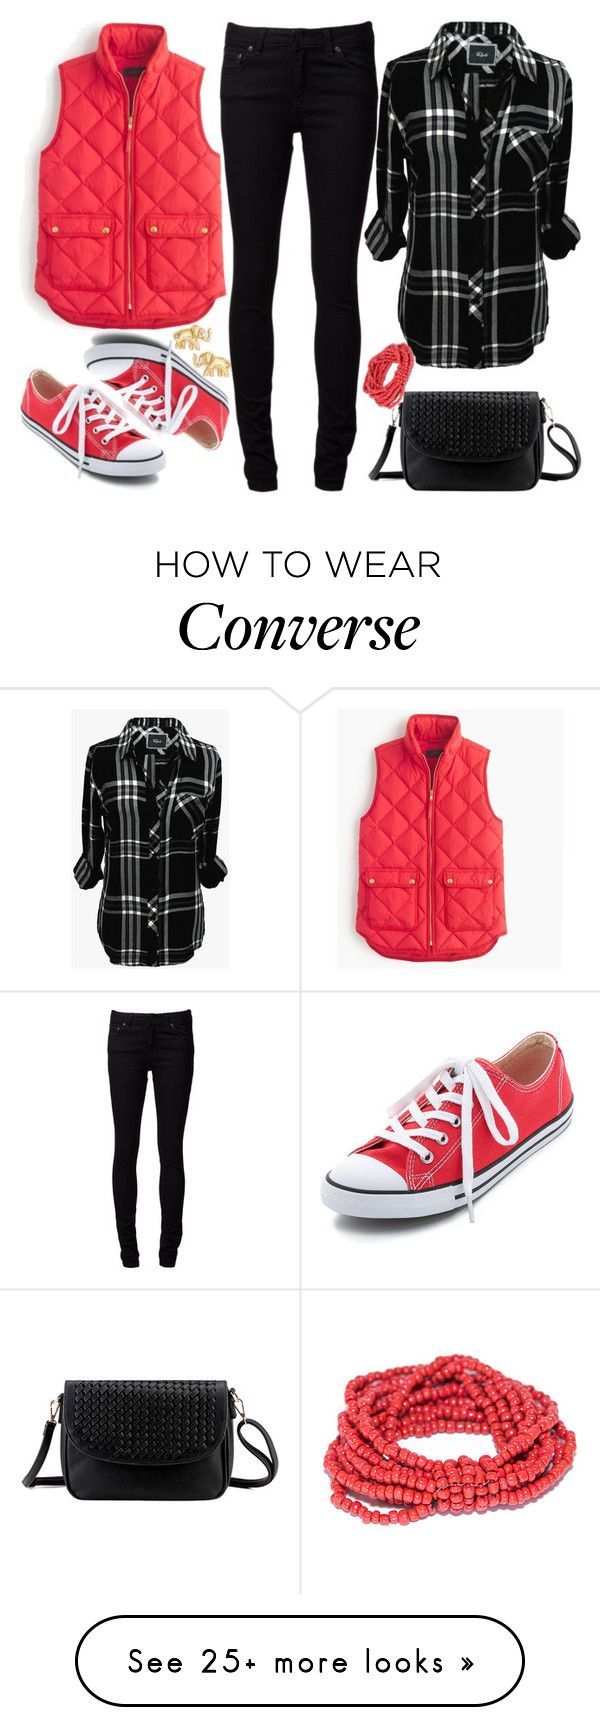 """Untitled #2678"" by emmafazekas on Polyvore featuring moda, Naked & Famous, Rails, J.Crew, Converse e Kate Spade"